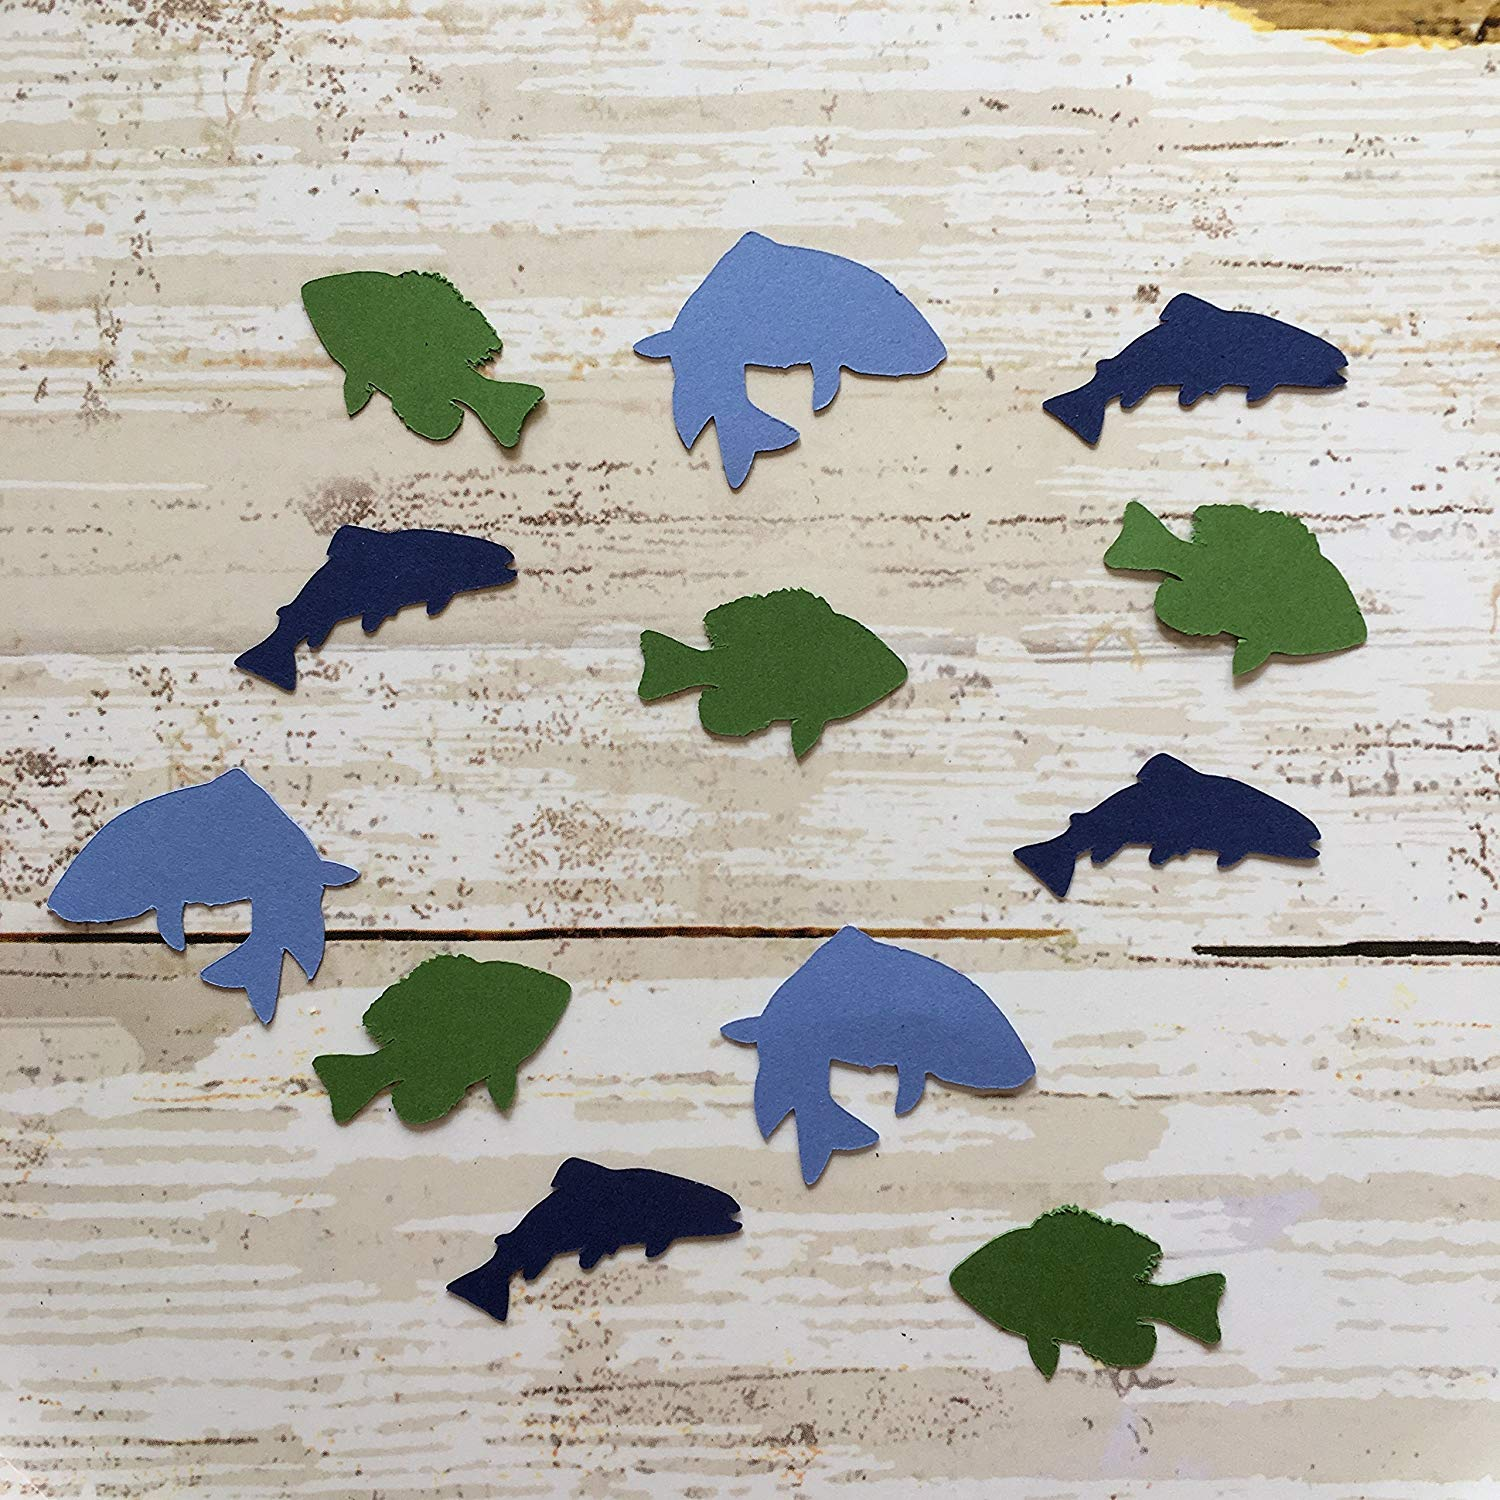 Fisherman Theme Fishing Party Supplies Fish Decorations Fishing Pole Confetti Rustic Theme Pole Cut Out Table Scatter Fishing Rod Fishing Theme